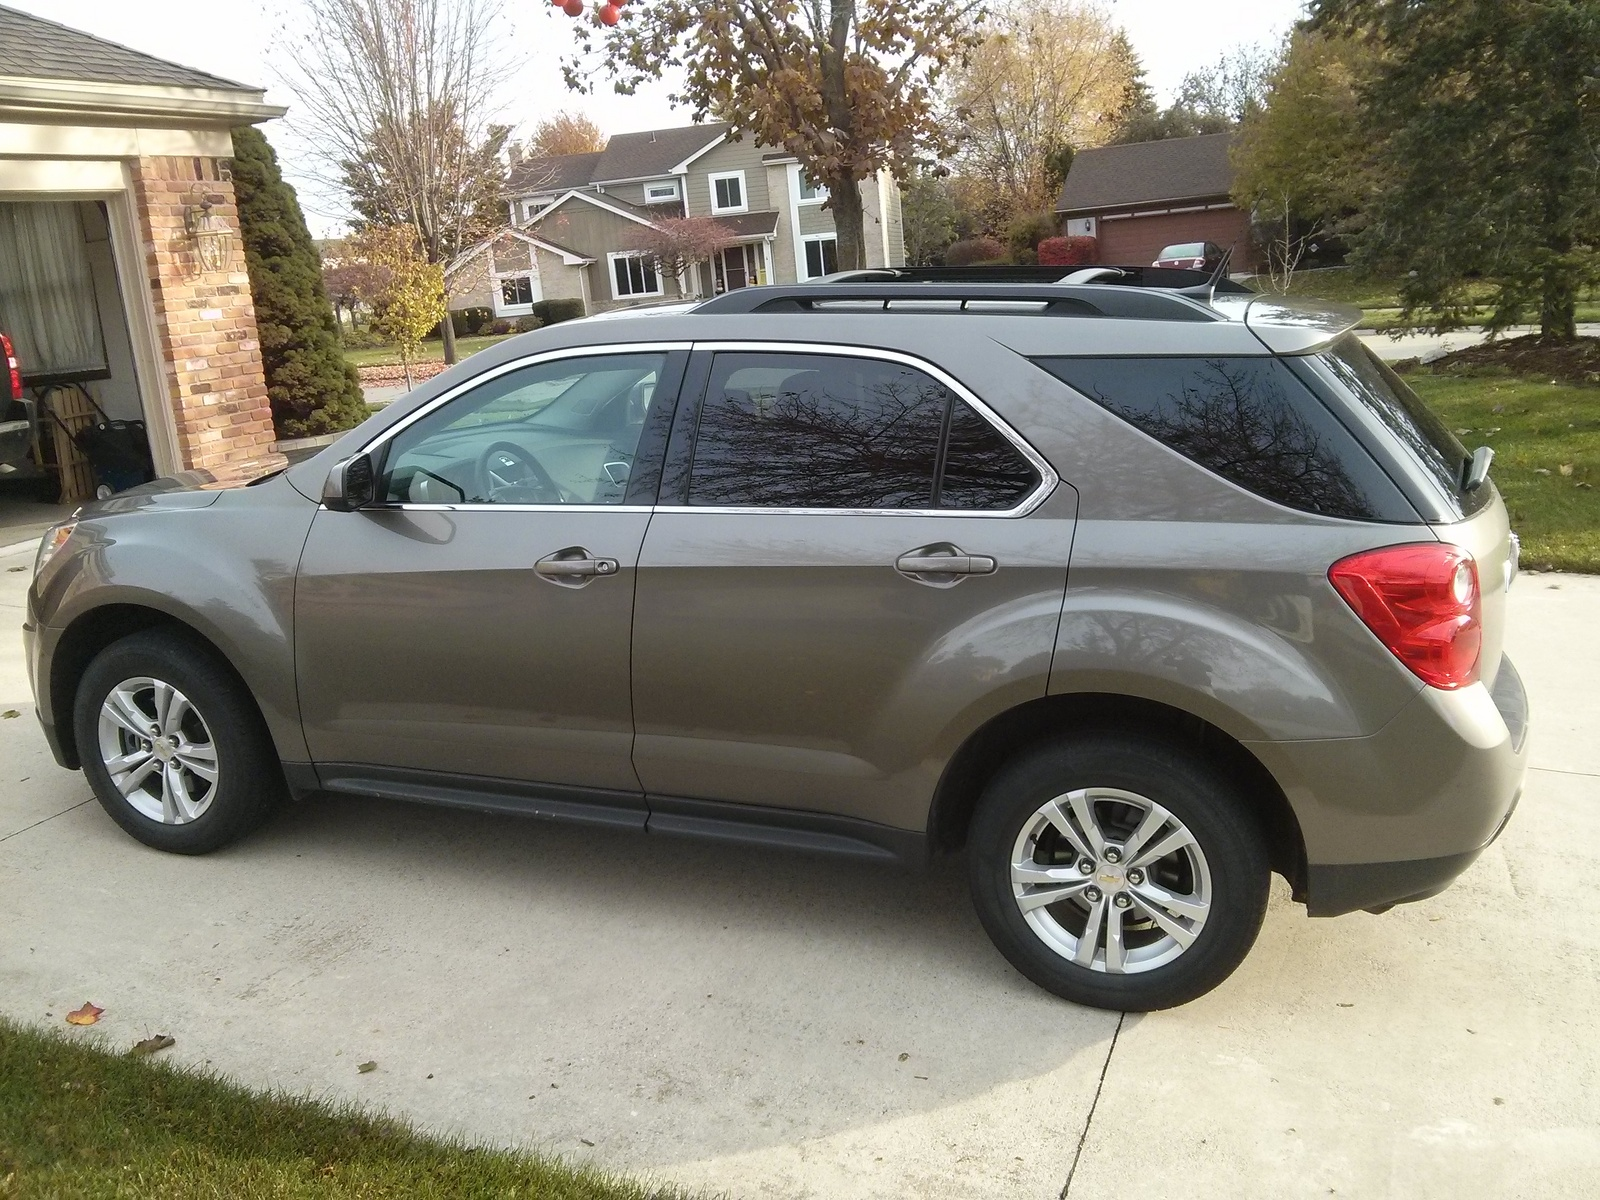 2013 chevrolet equinox chevy gas mileage the car html. Black Bedroom Furniture Sets. Home Design Ideas